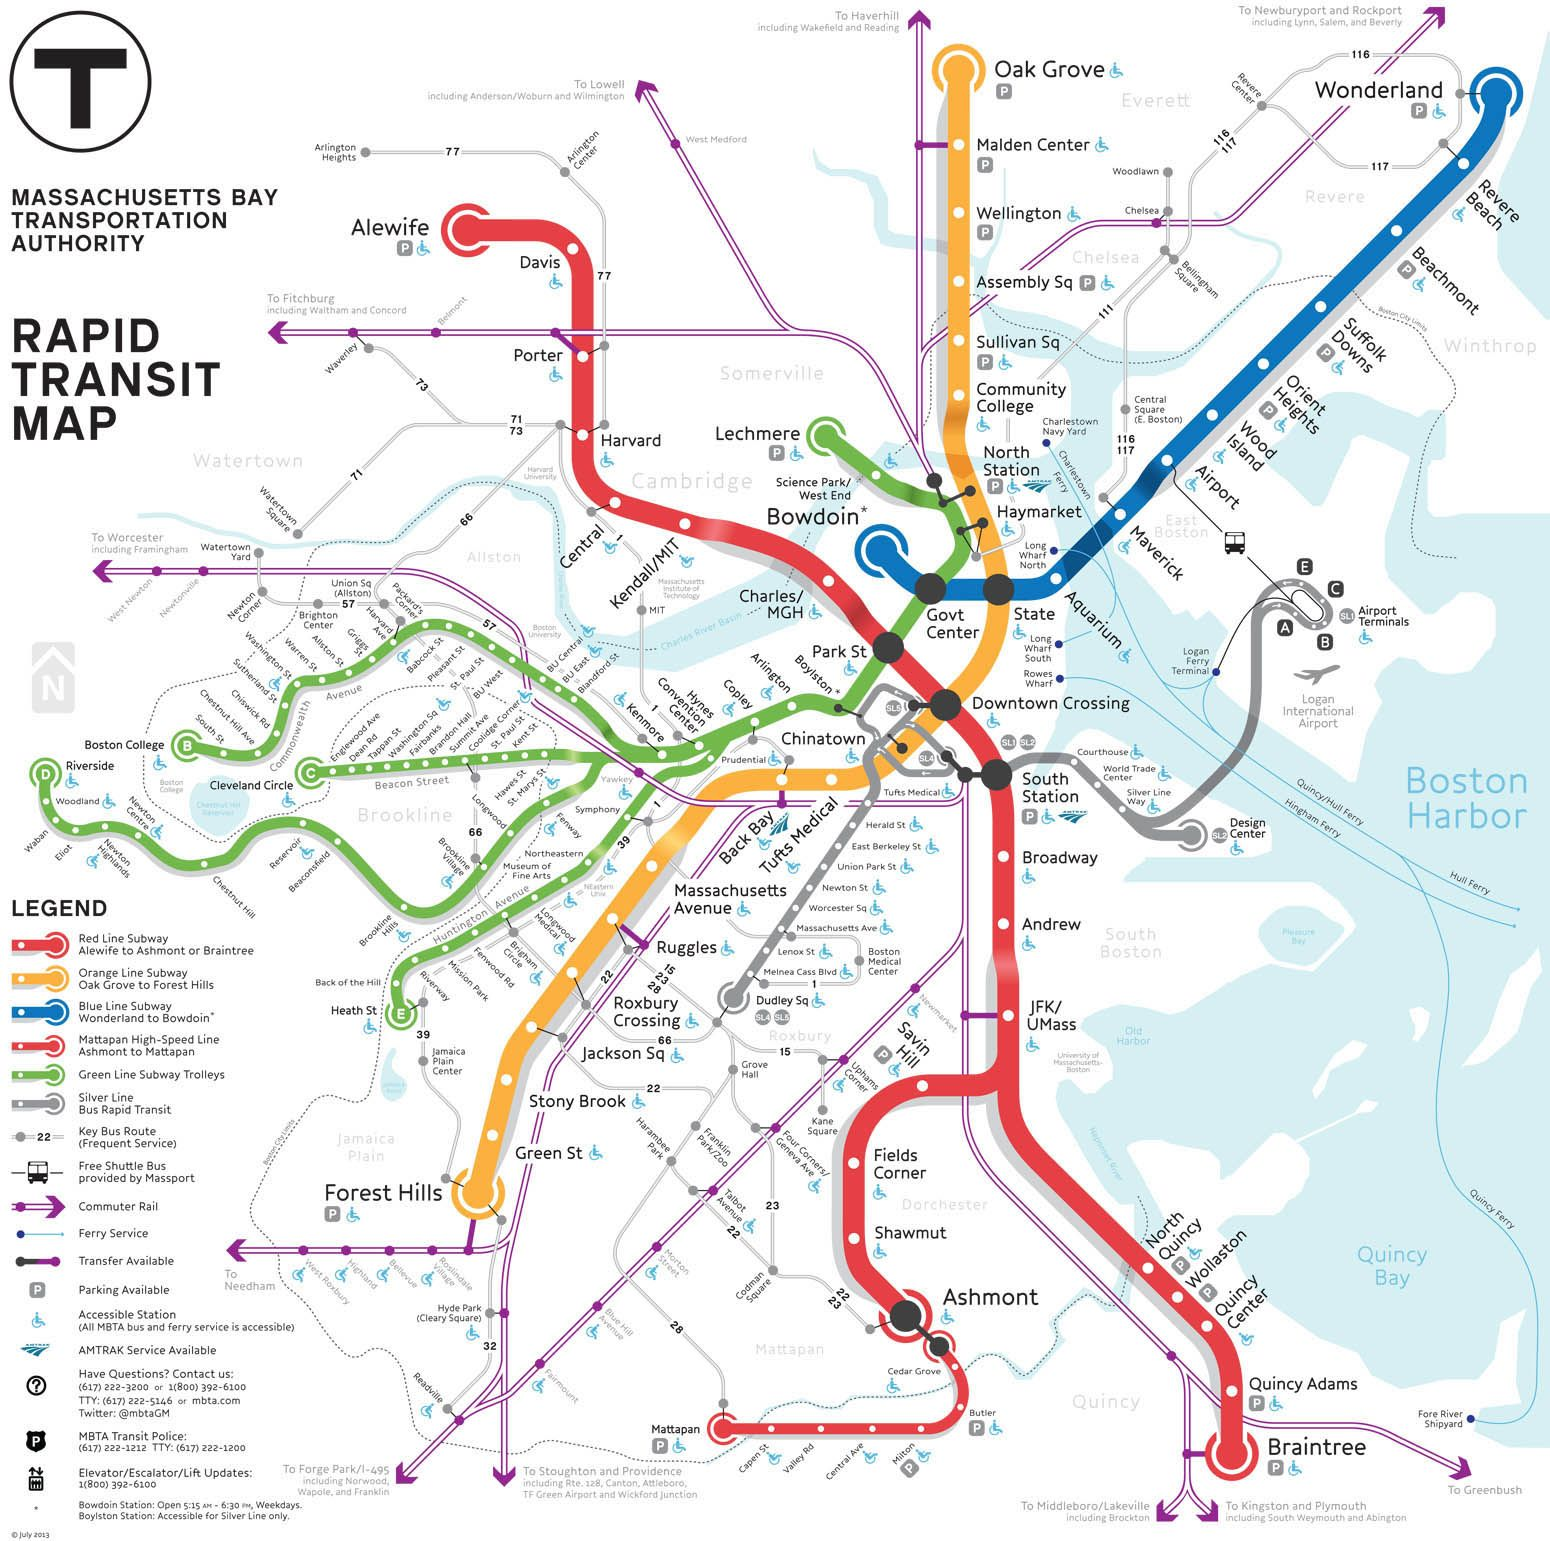 map of boston mbta The Mbta Map Competition Finals Transit Map Map Subway Map map of boston mbta